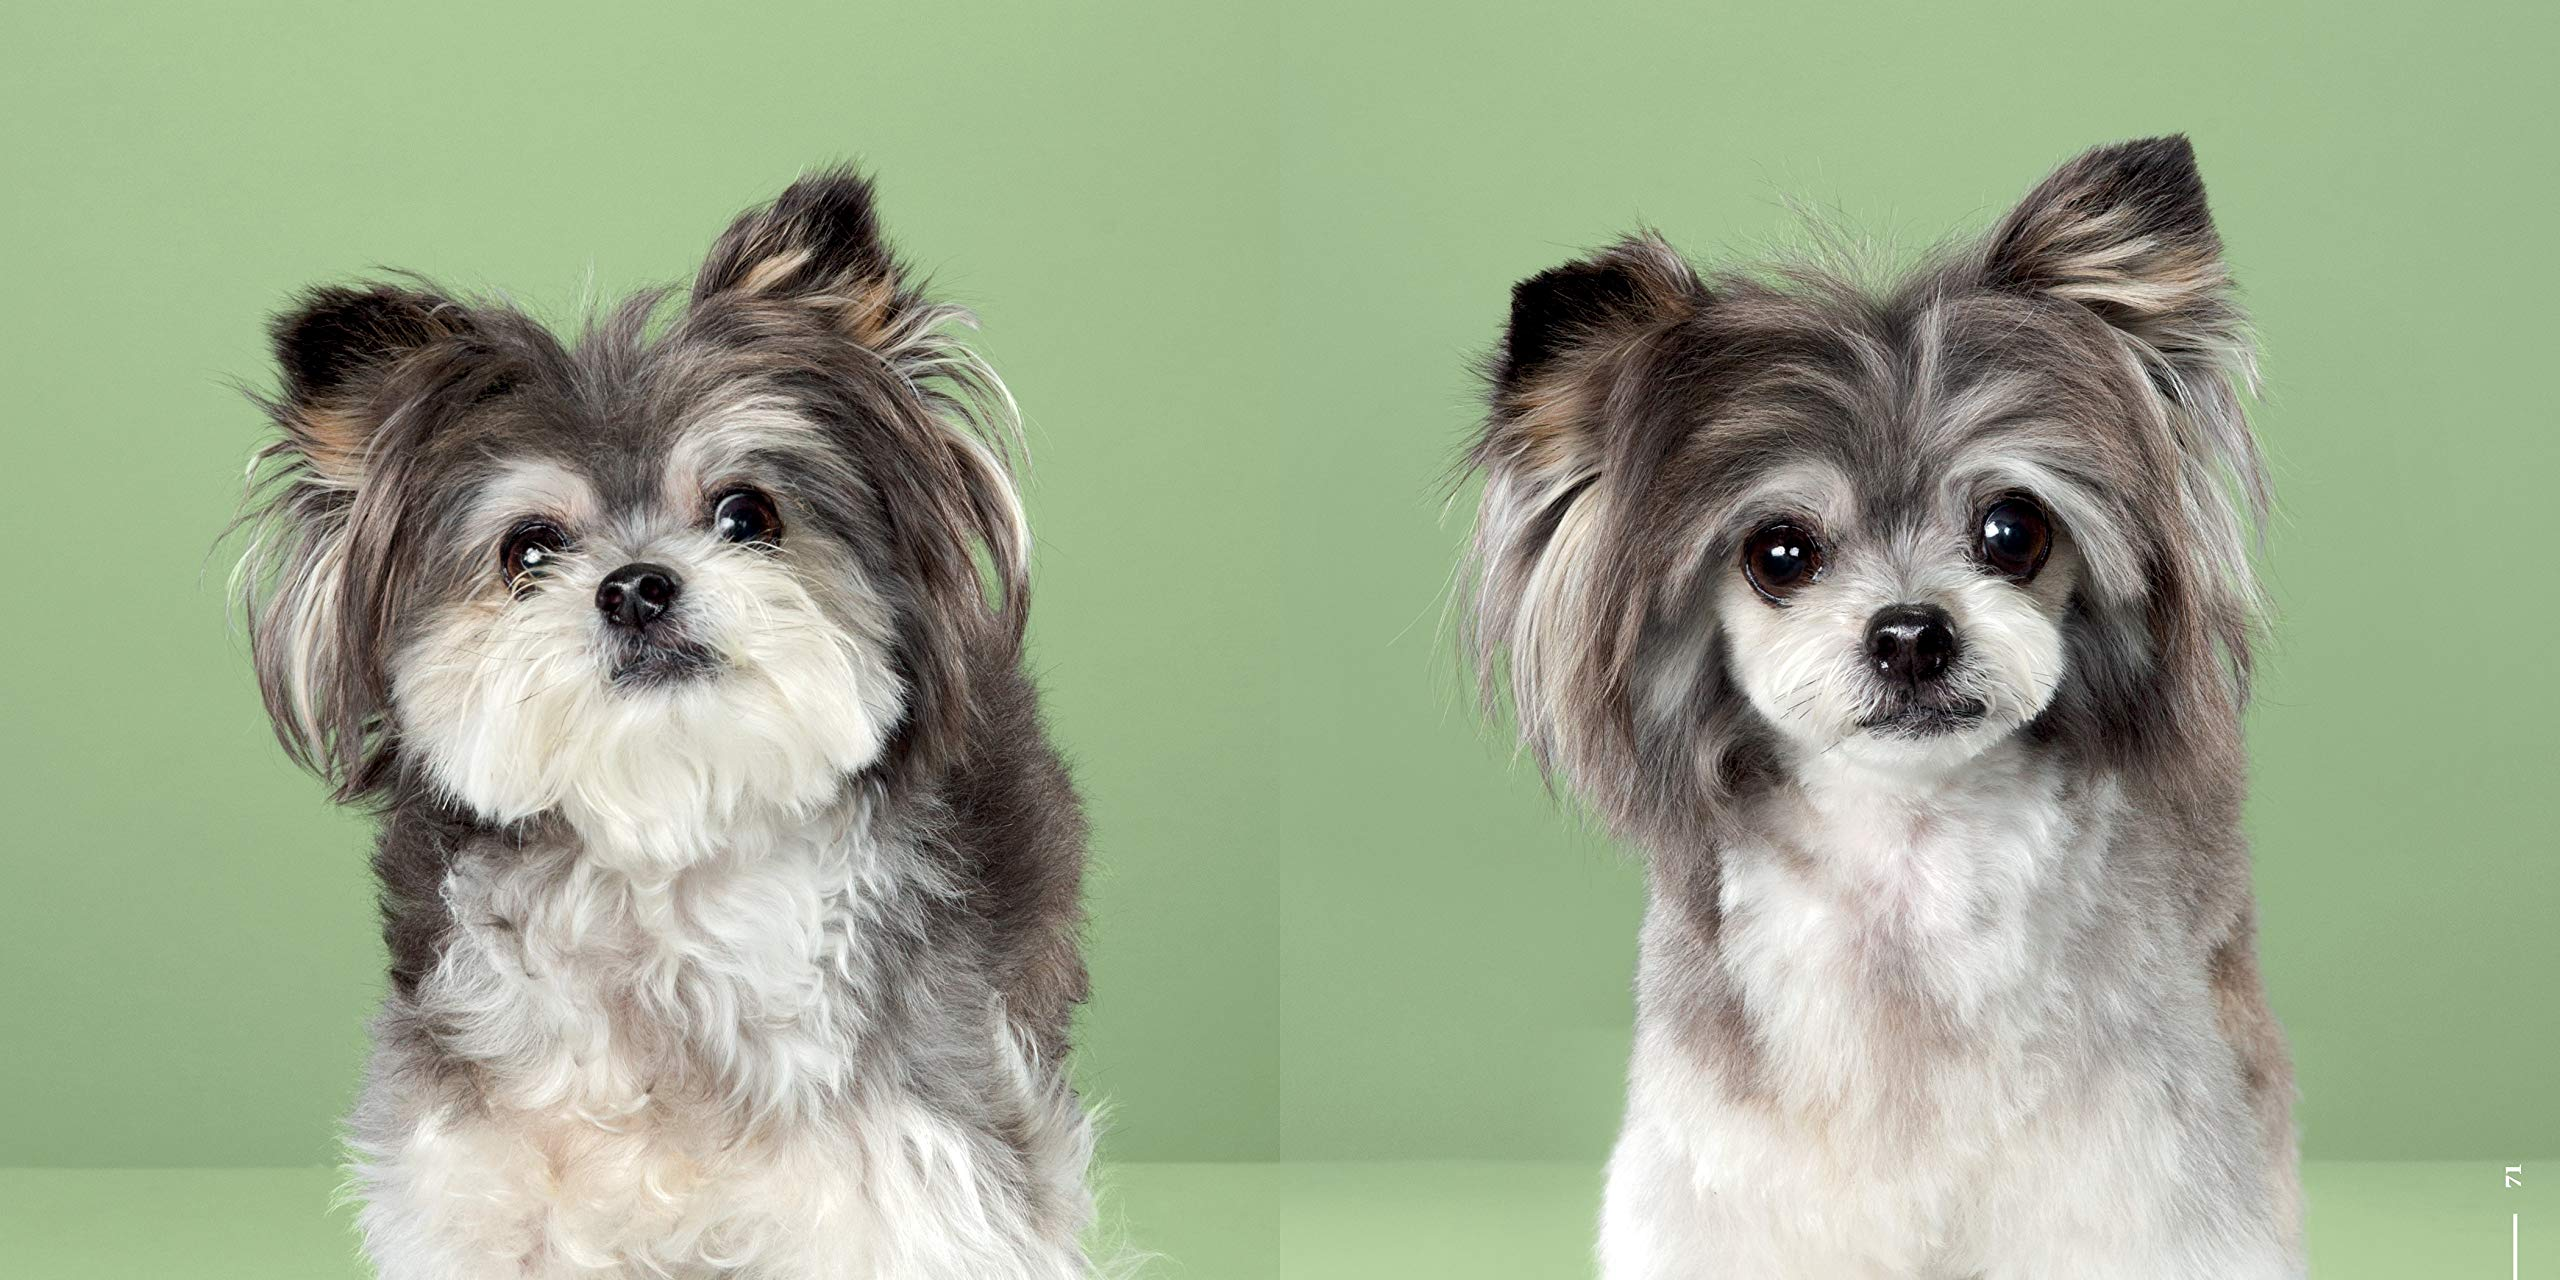 Amazon Com Puppy Styled Japanese Dog Grooming Before After 9781682681763 Chon Grace Books